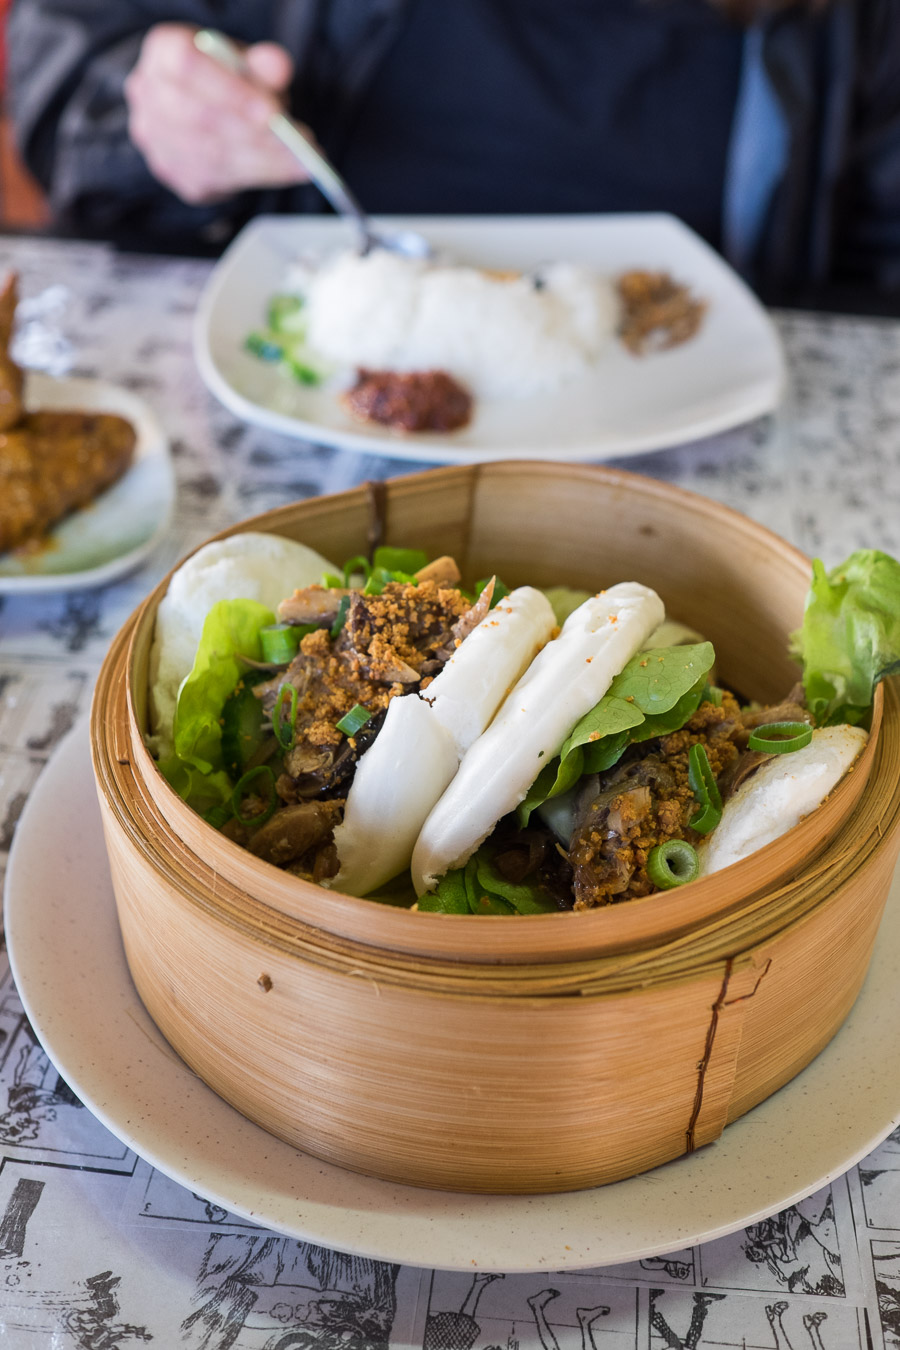 Duck gua bao (AU$5.50, 2 pcs)